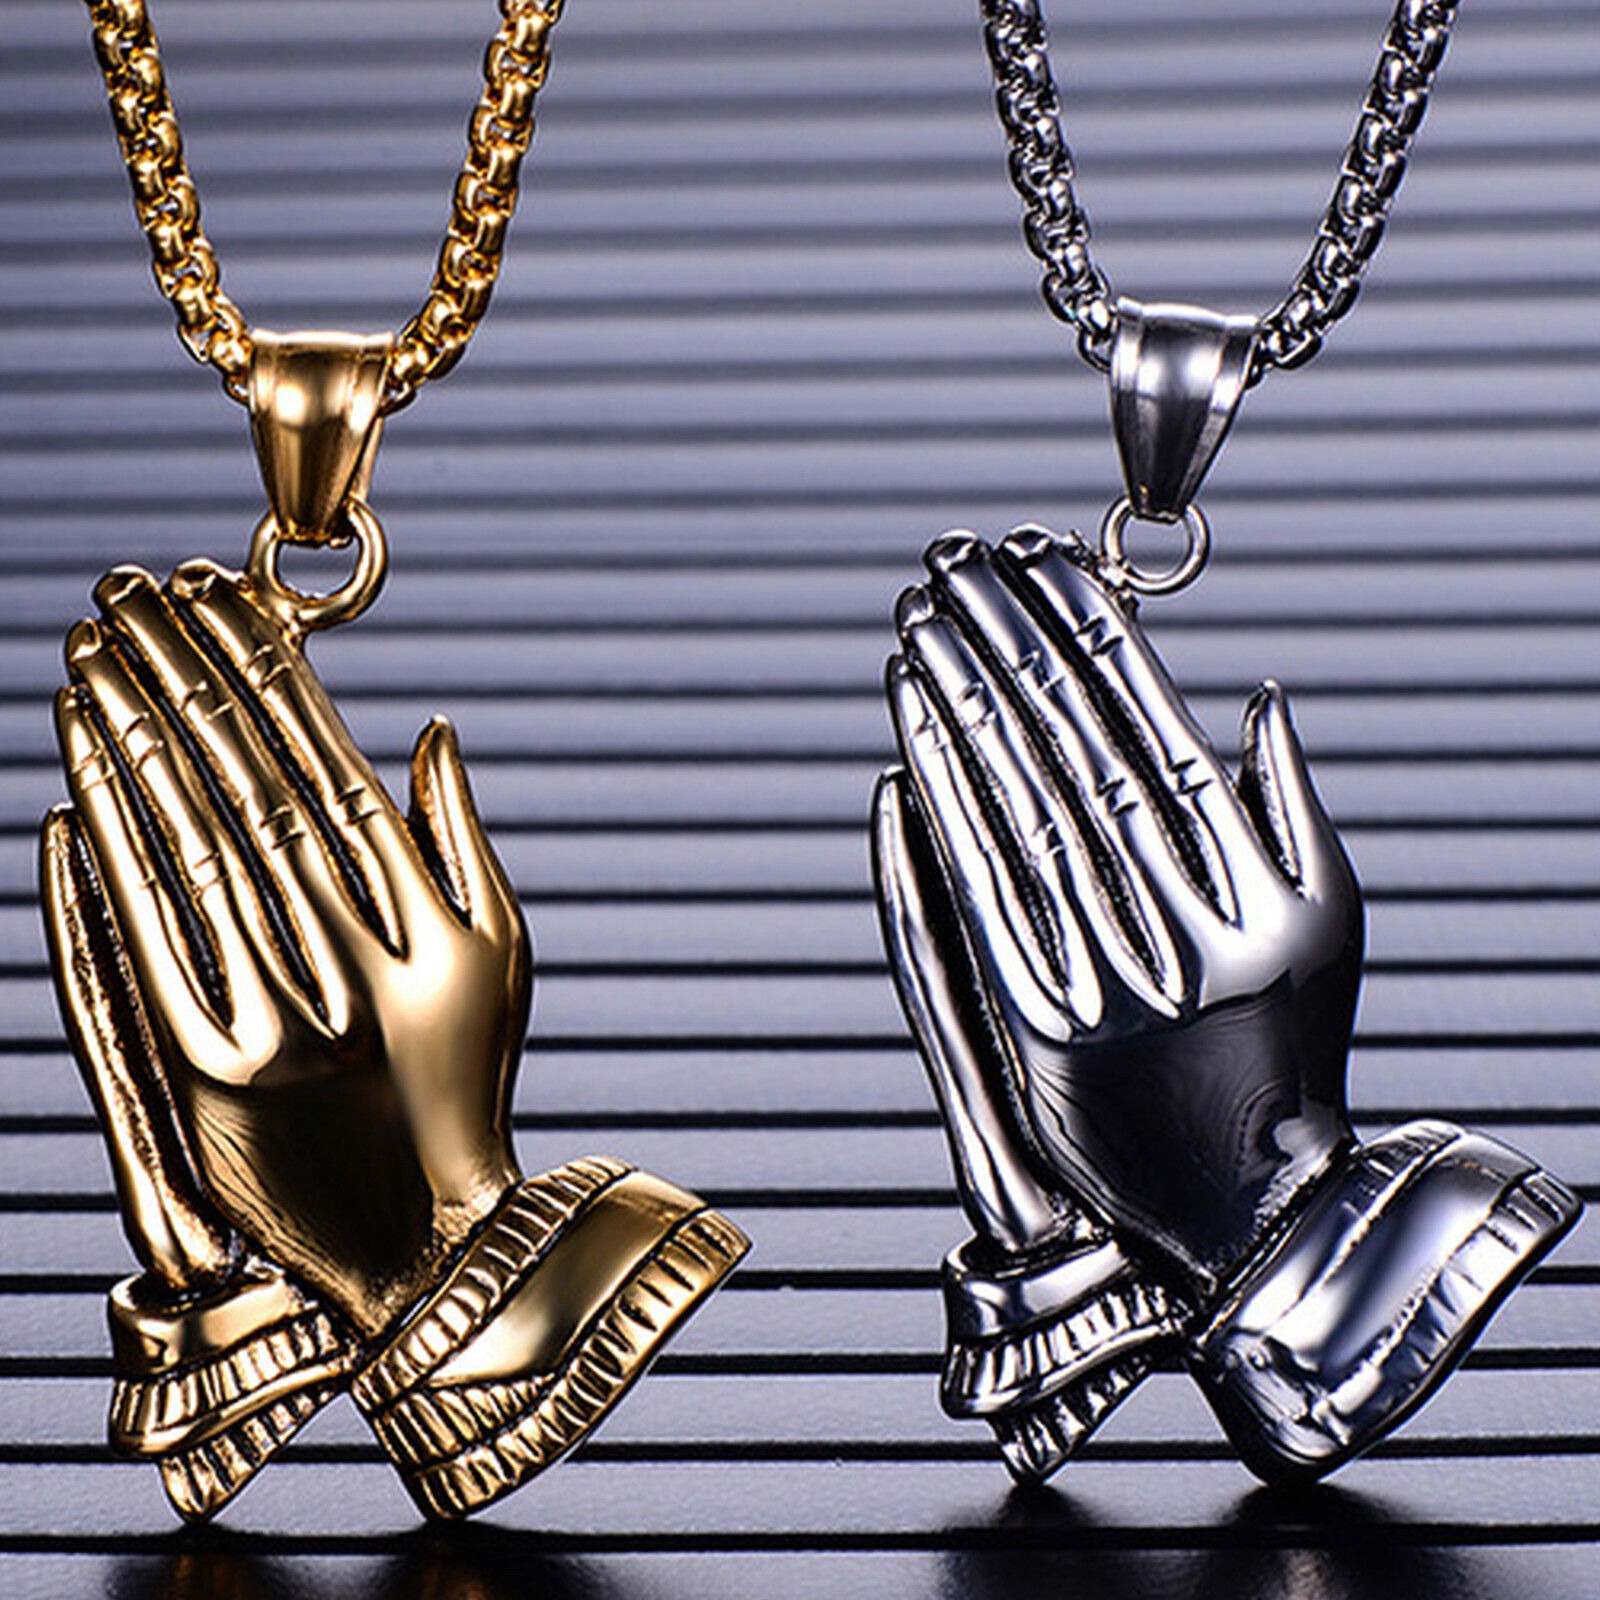 Men's Stainless Steel Large Praying Hands Pendant Necklace Chains, Necklaces & Pendants